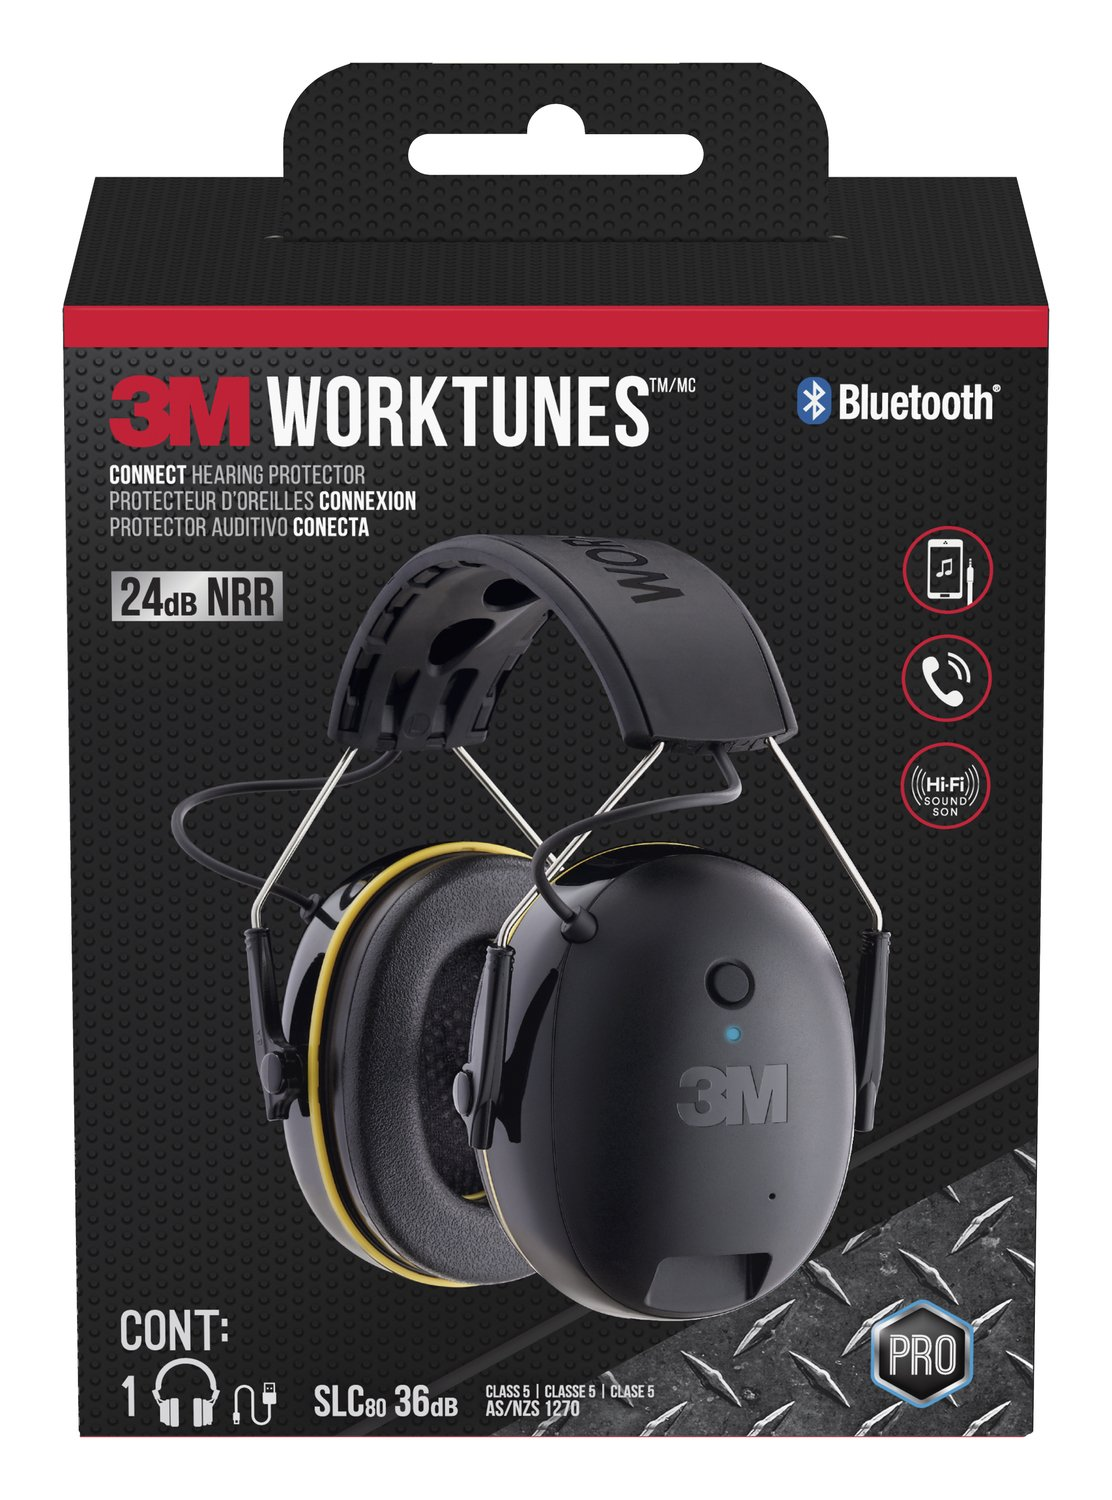 3M WorkTunes Connect Hearing Protector with Bluetooth technology by 3M Safety